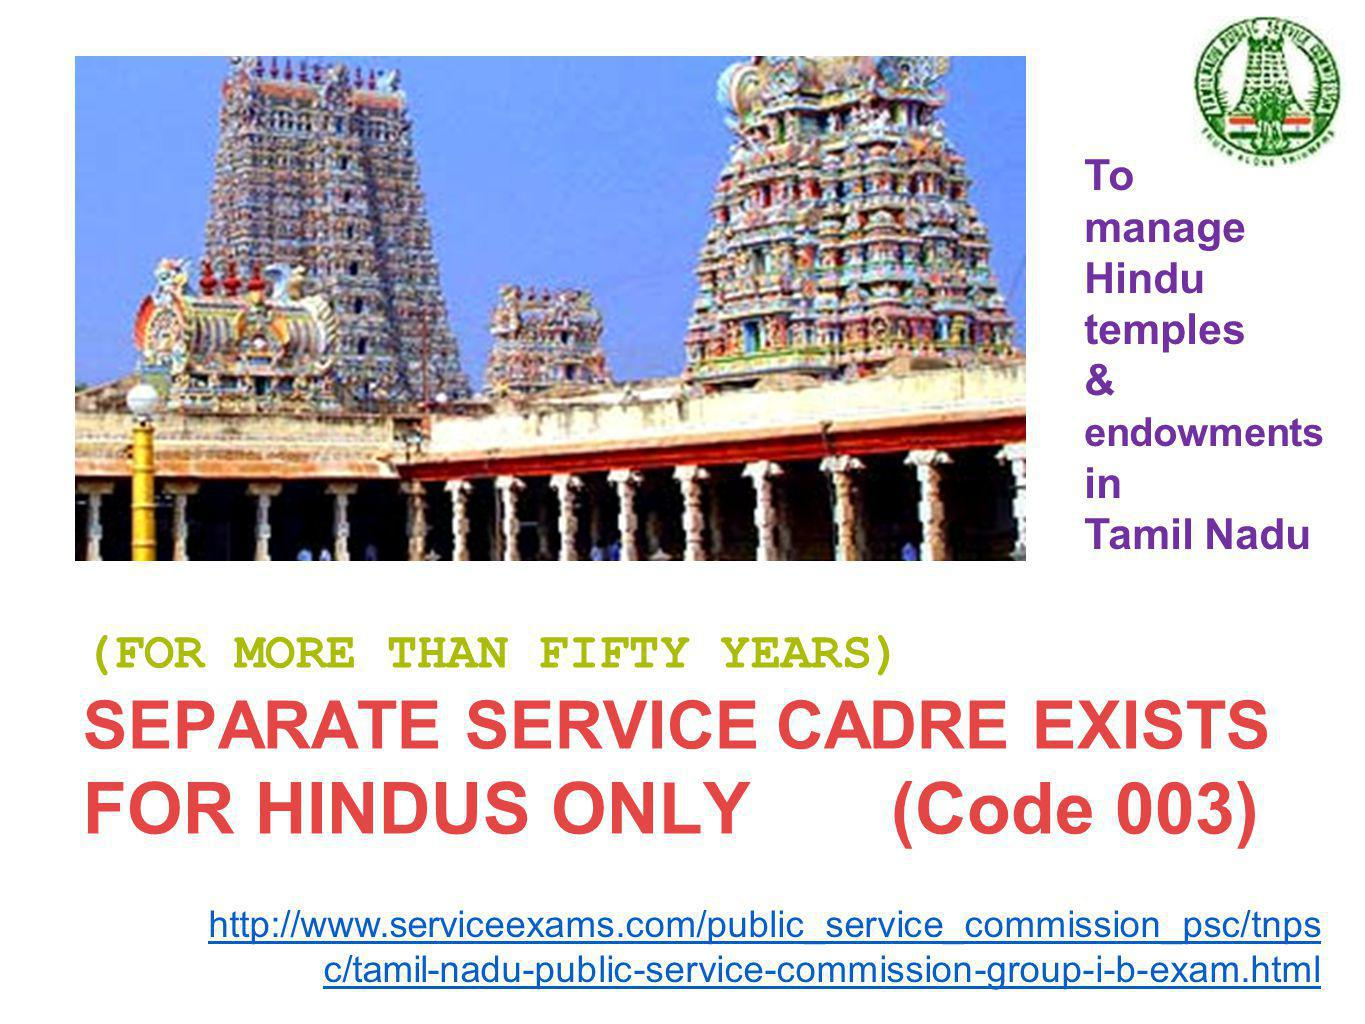 (FOR MORE THAN FIFTY YEARS) SEPARATE SERVICE CADRE EXISTS FOR HINDUS ONLY (Code 003) To manage Hindu temples & endowments in Tamil Nadu http://www.ser